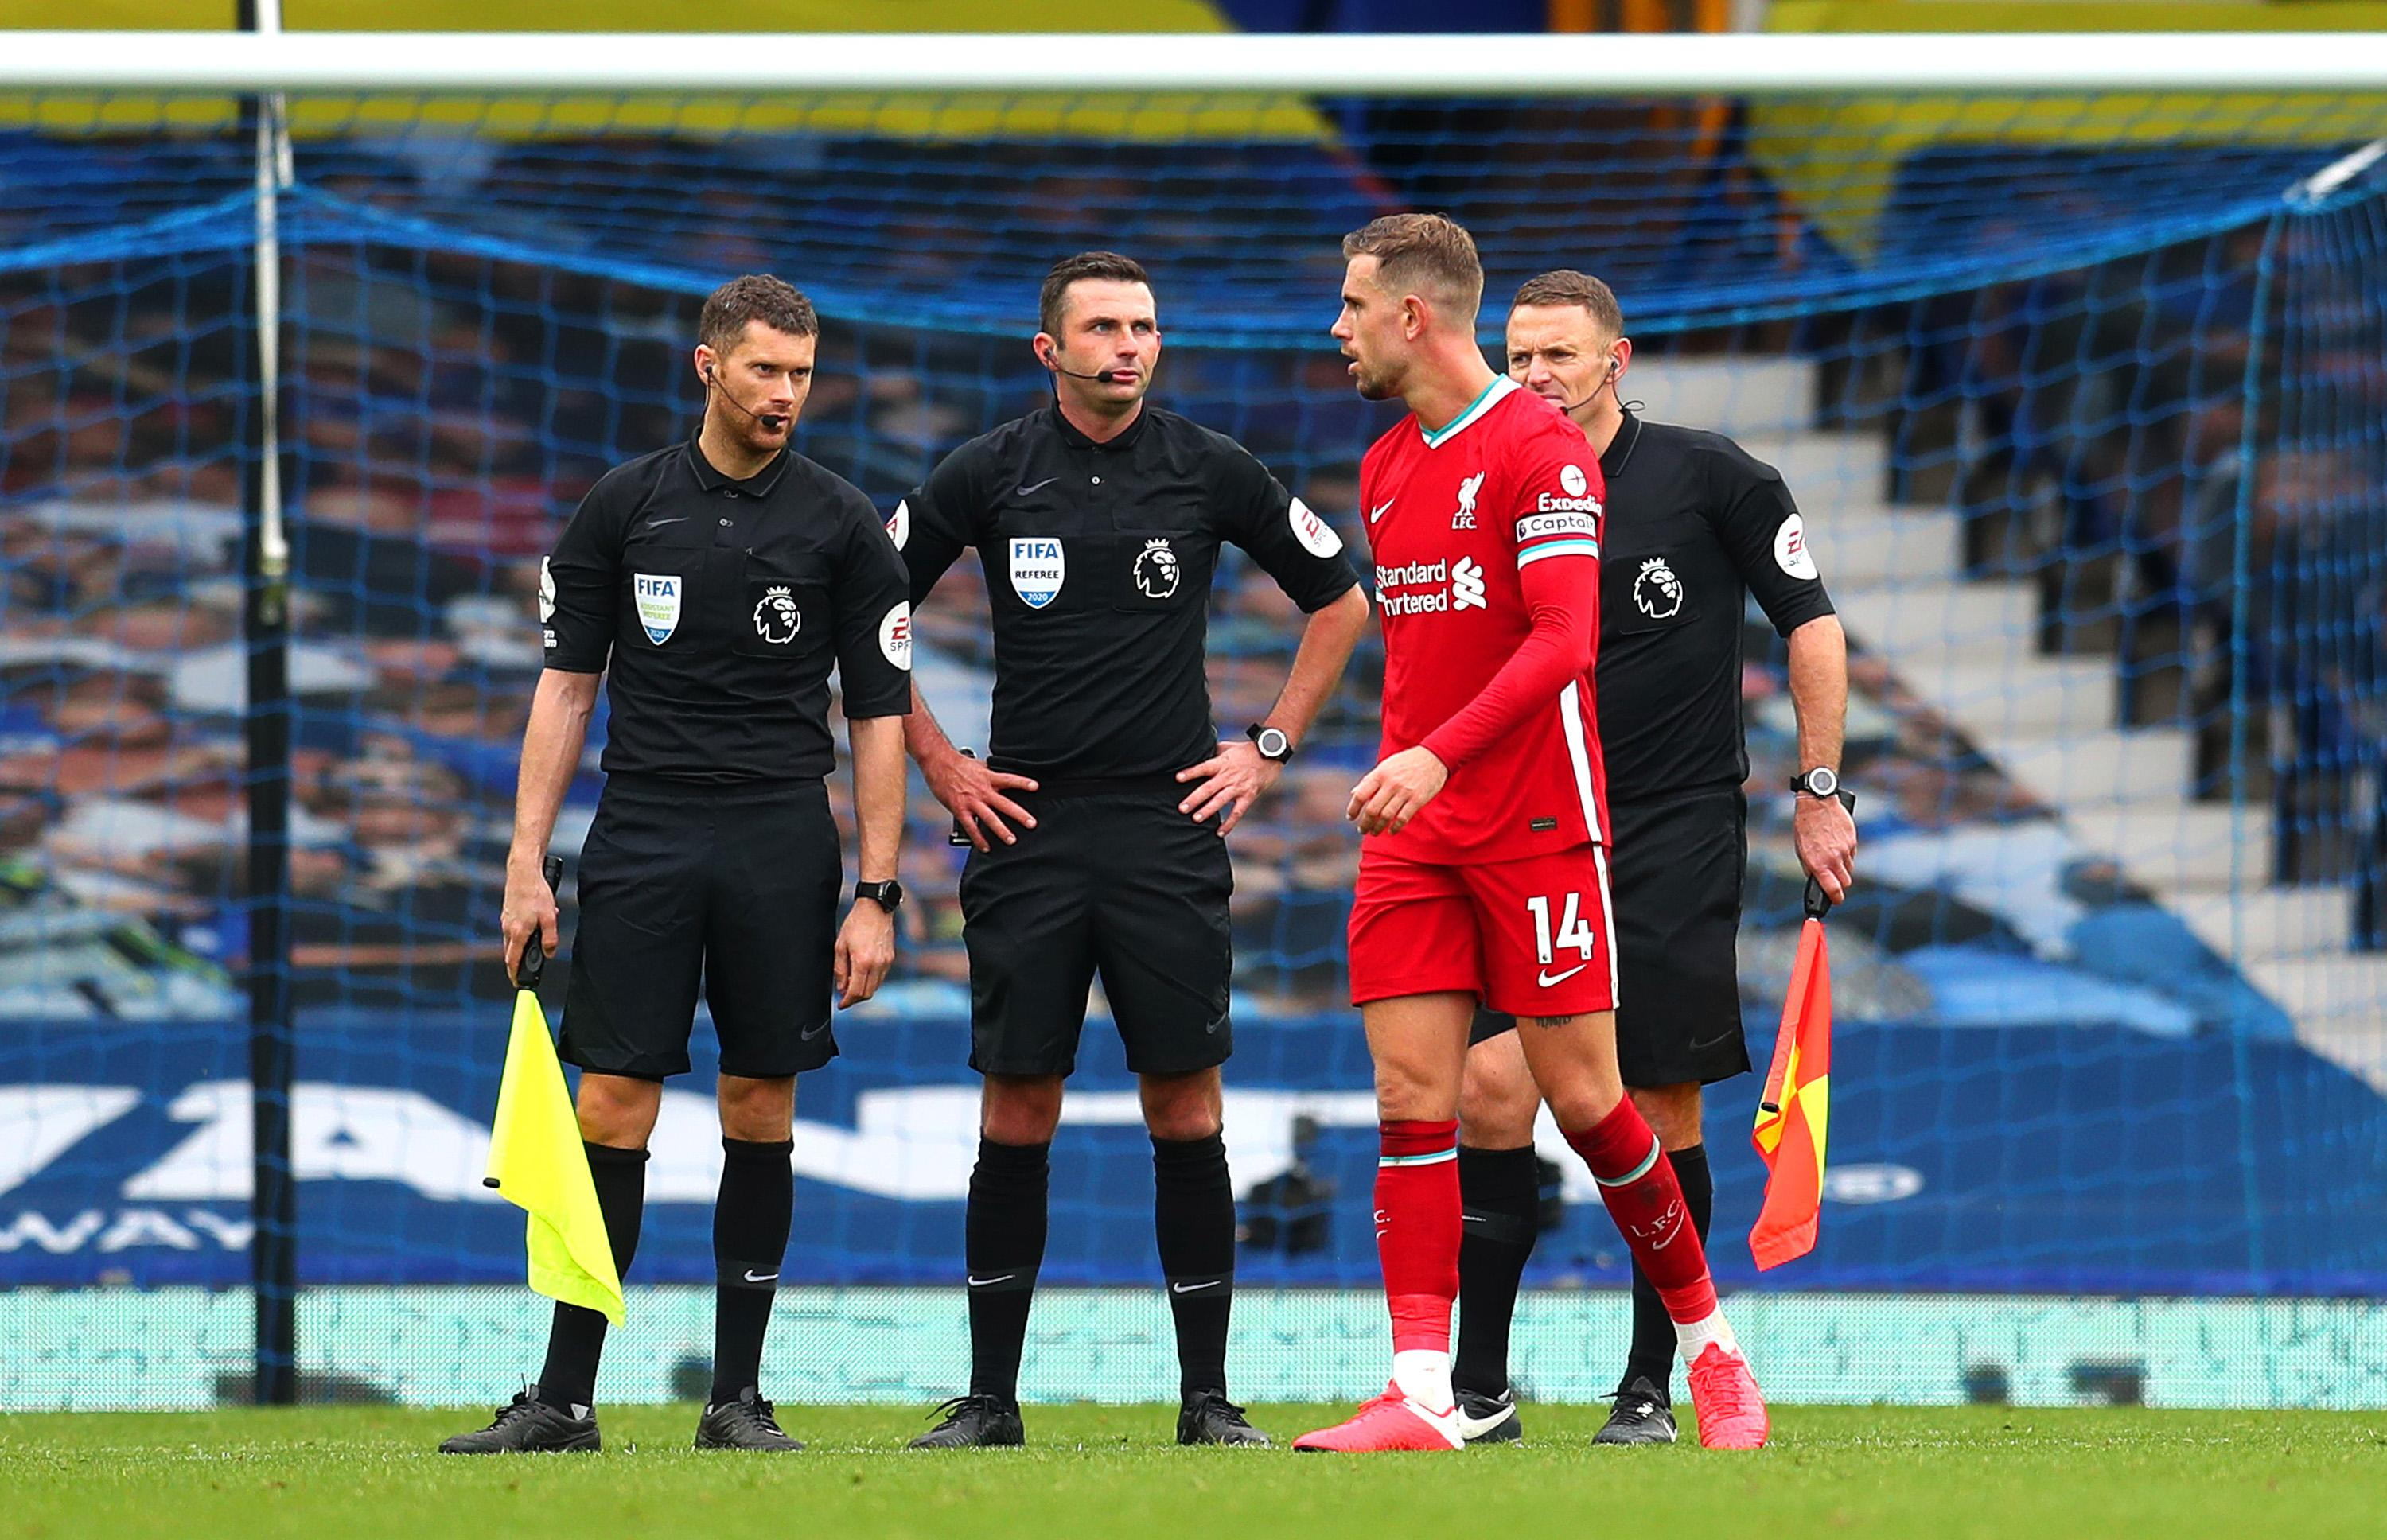 Premier League: Liverpool denied late win against Everton by utterly  incompetent officiating